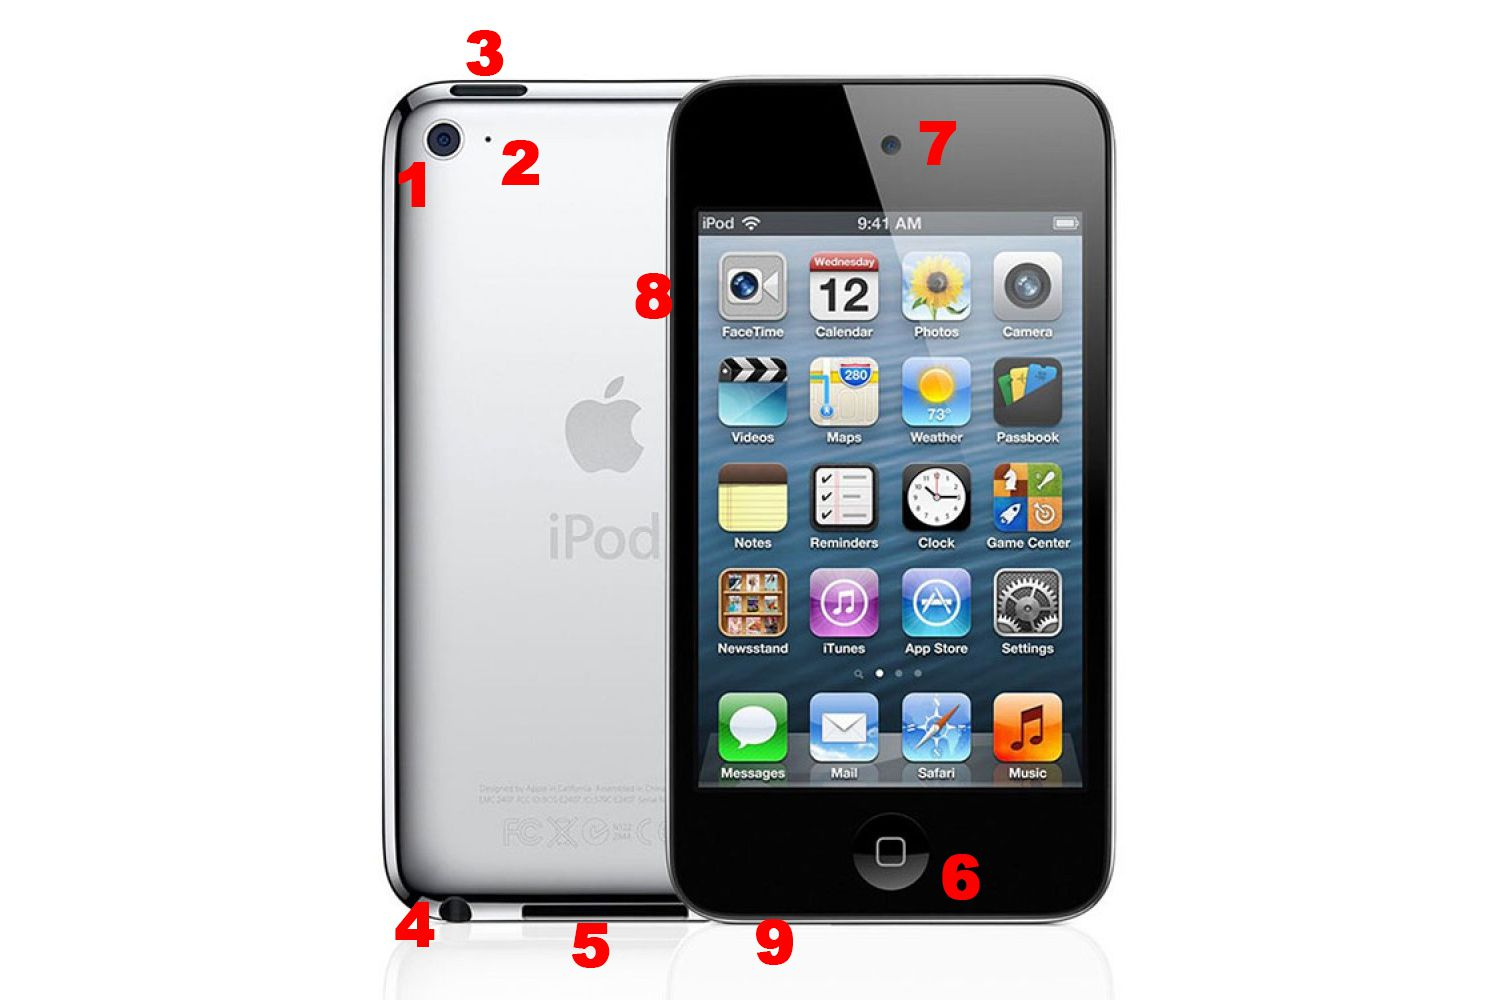 how to add movies to ipod touch from computer